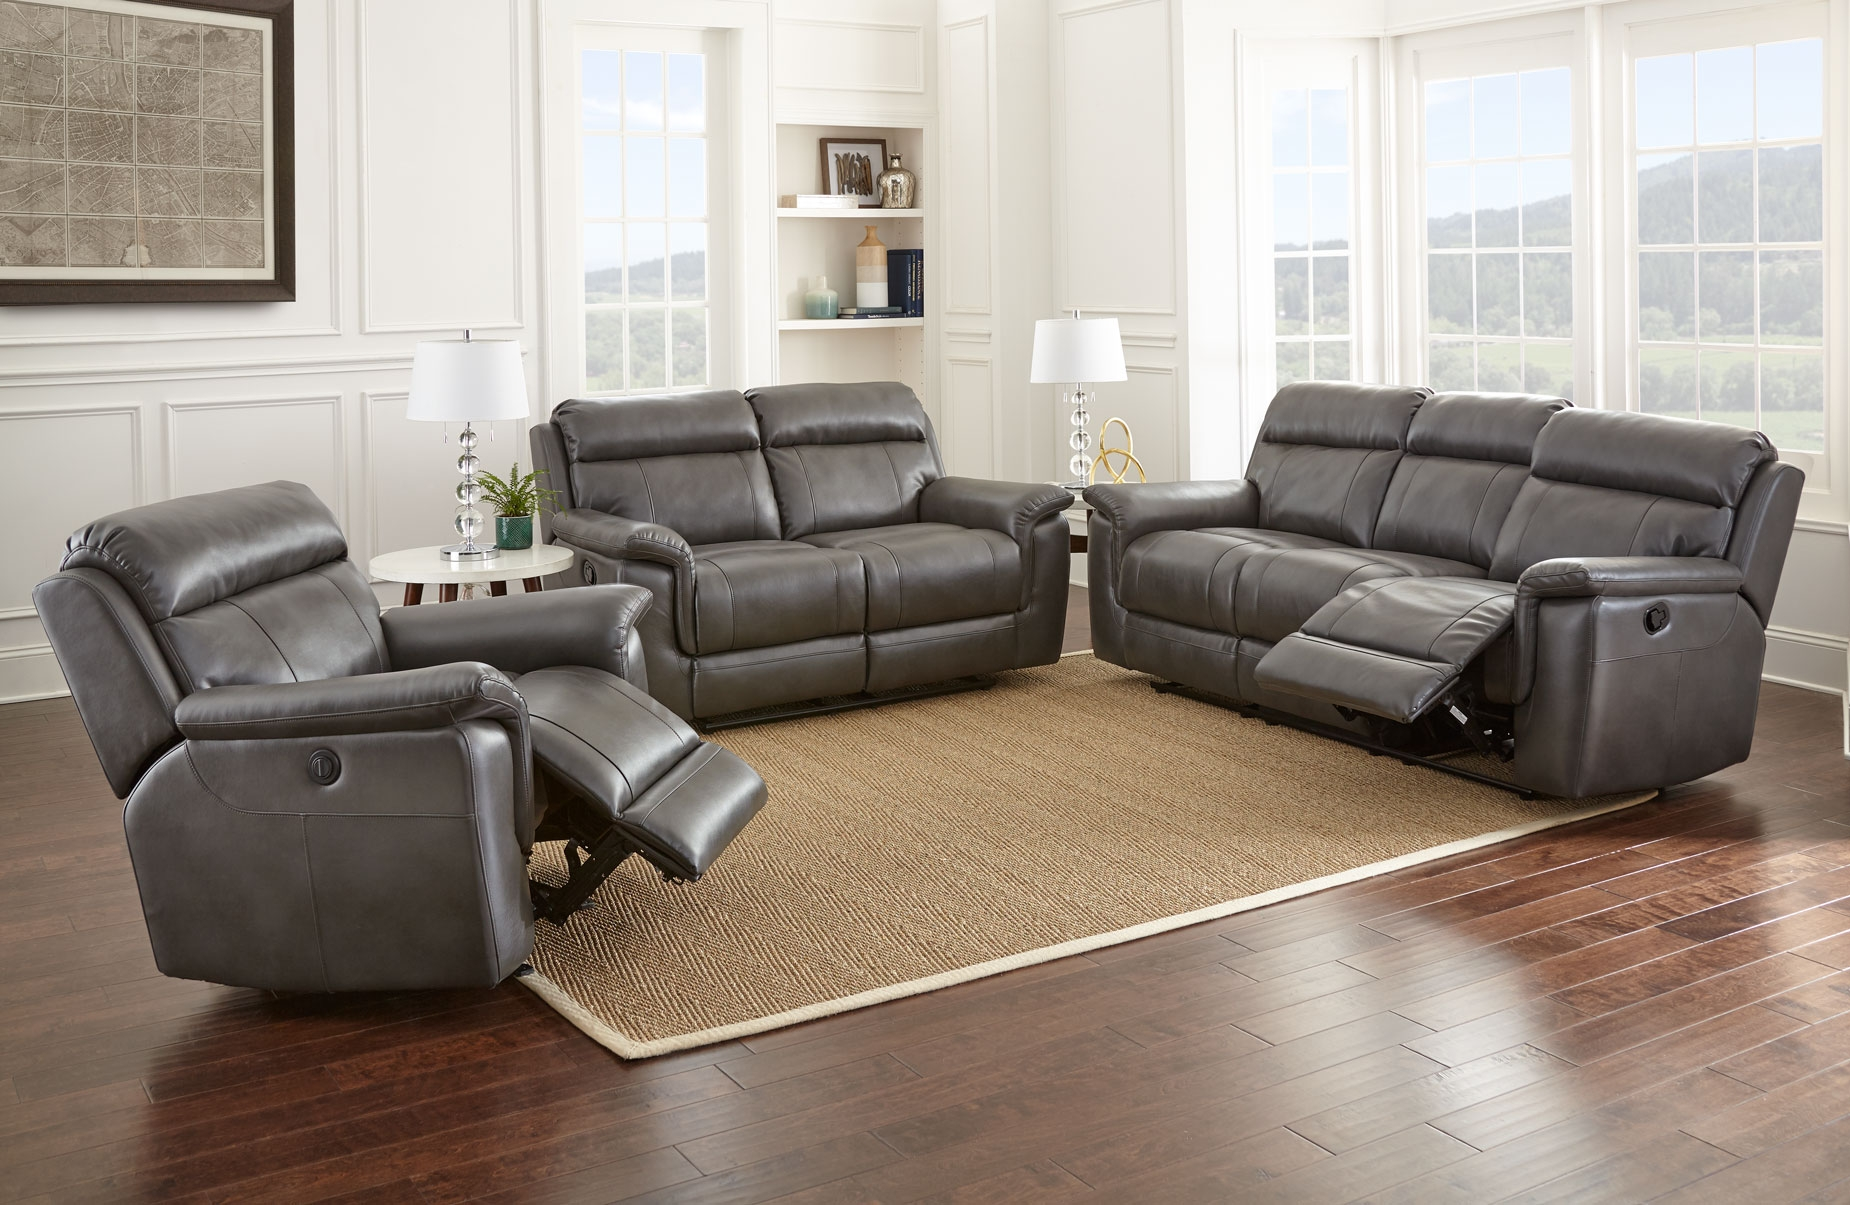 WAREHOUSE PRICE: $1349.99 | MONTHLY PAYMENT $29 O.A.C